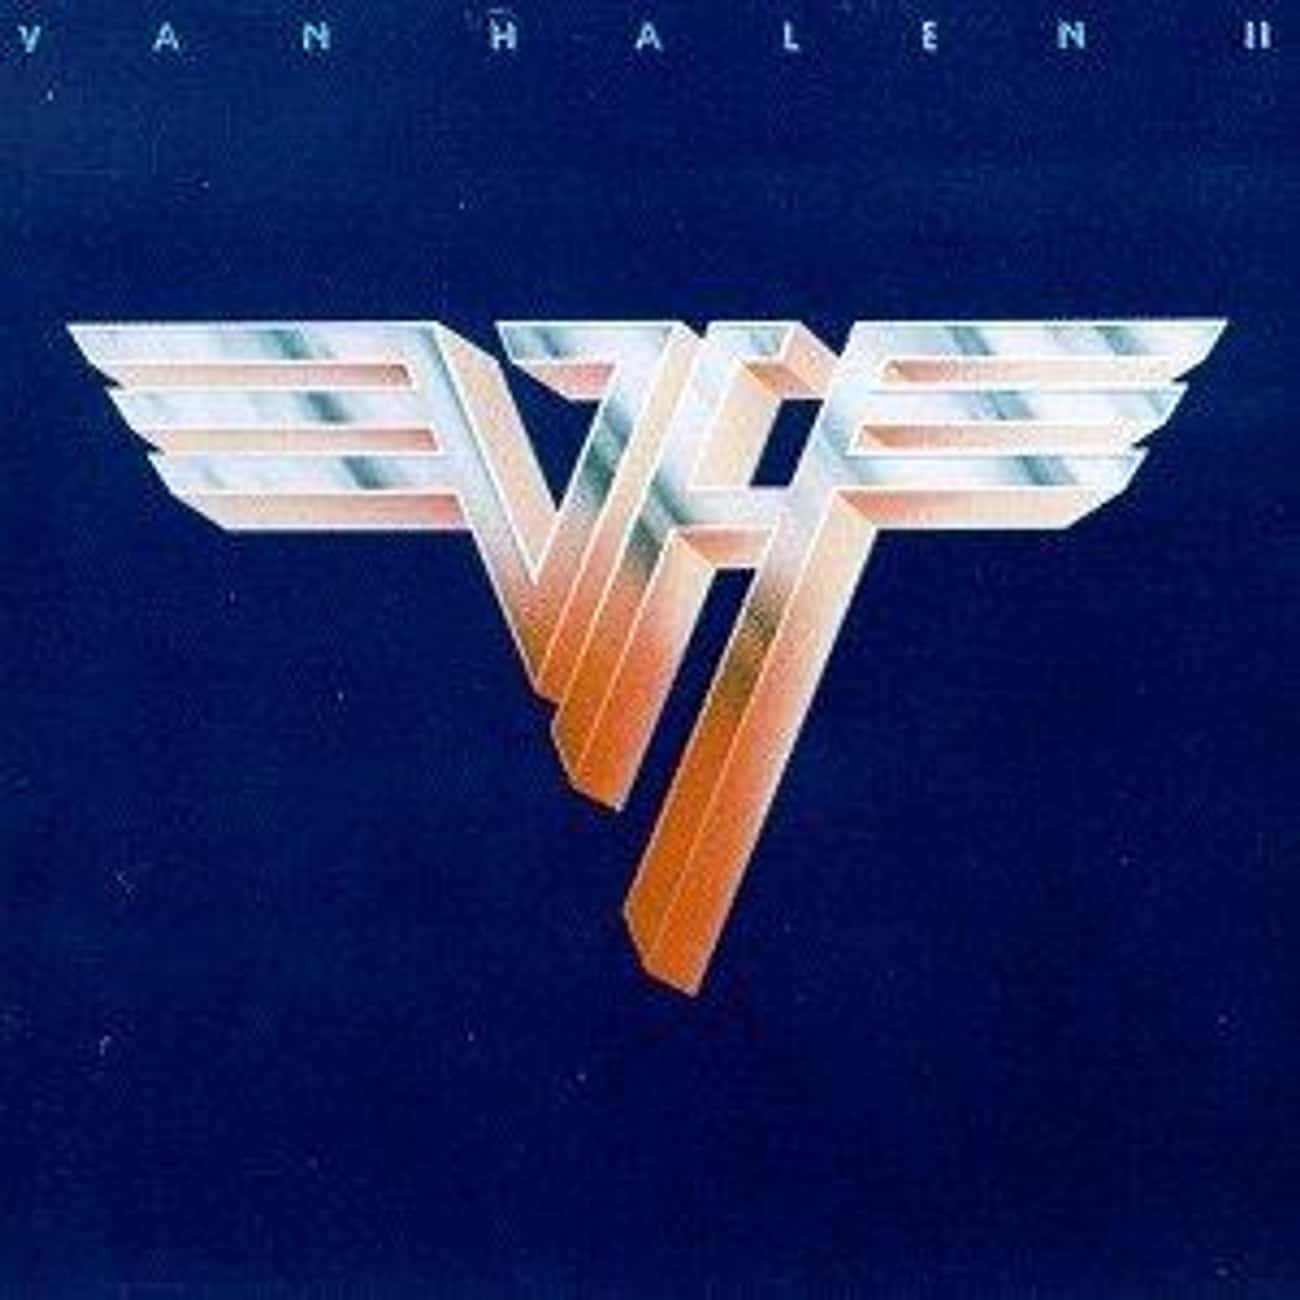 Van Halen II is listed (or ranked) 3 on the list The Best Van Halen Albums of All Time